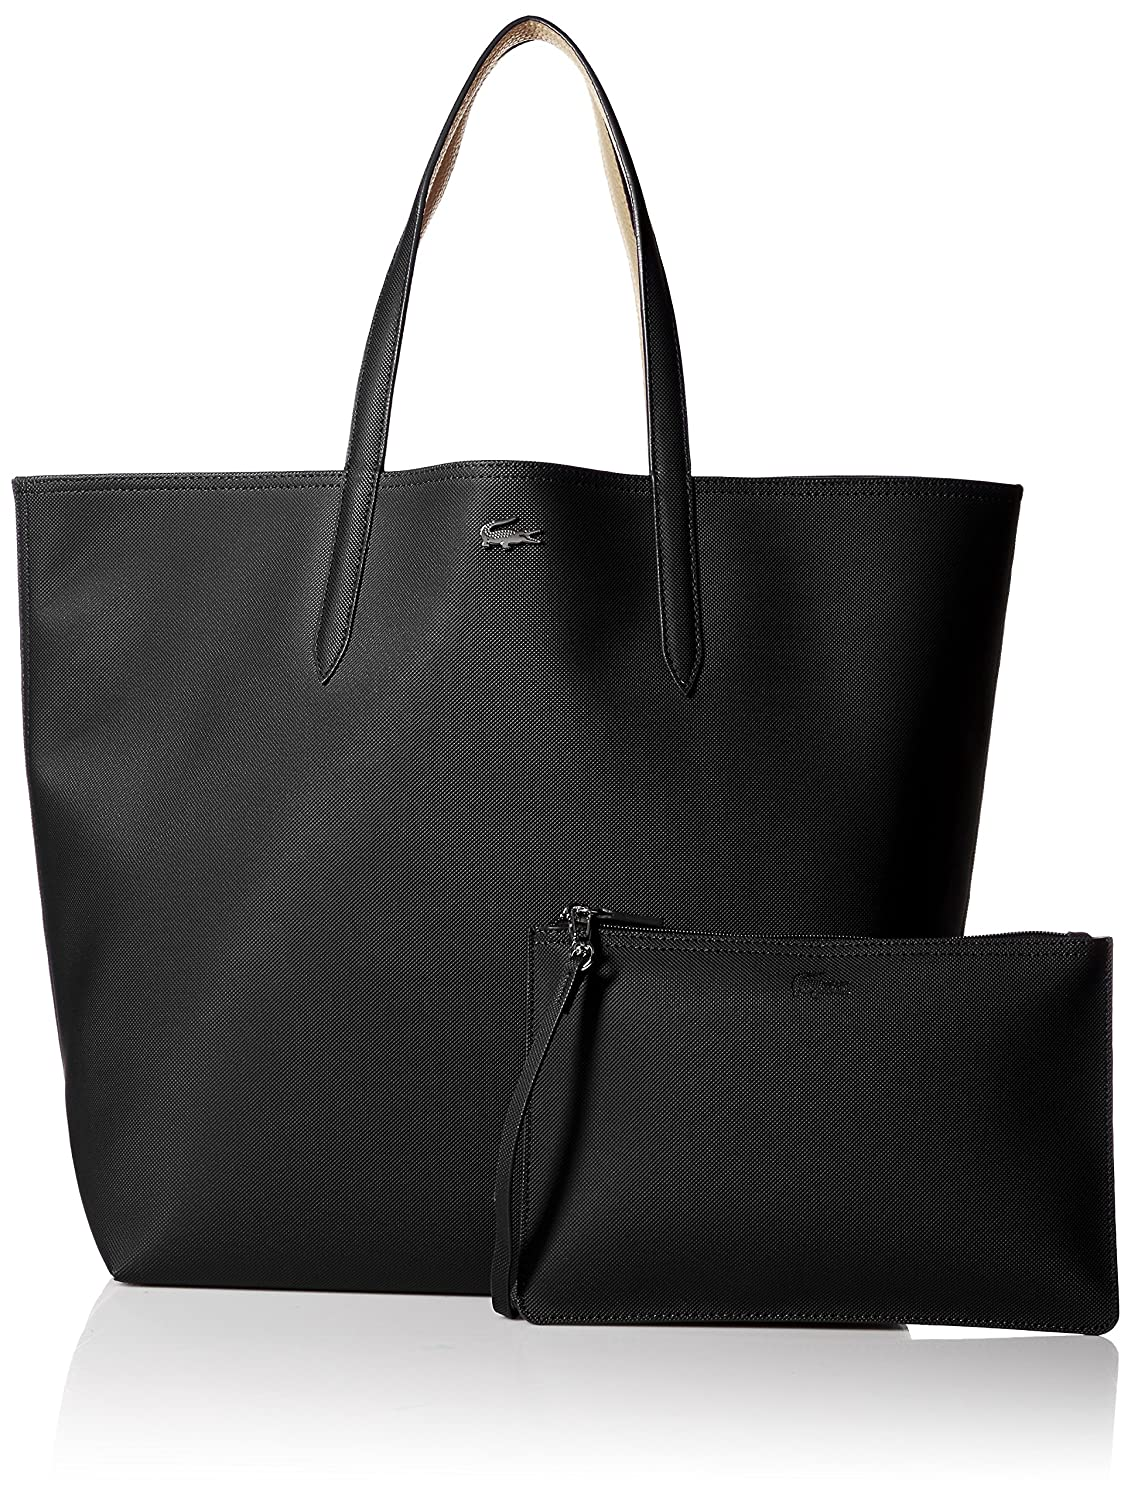 Lacoste Anna Shopping Bag, NF2142AA, Black Warm Sand  Amazon.ca  Clothing    Accessories 4bb6fca3a7